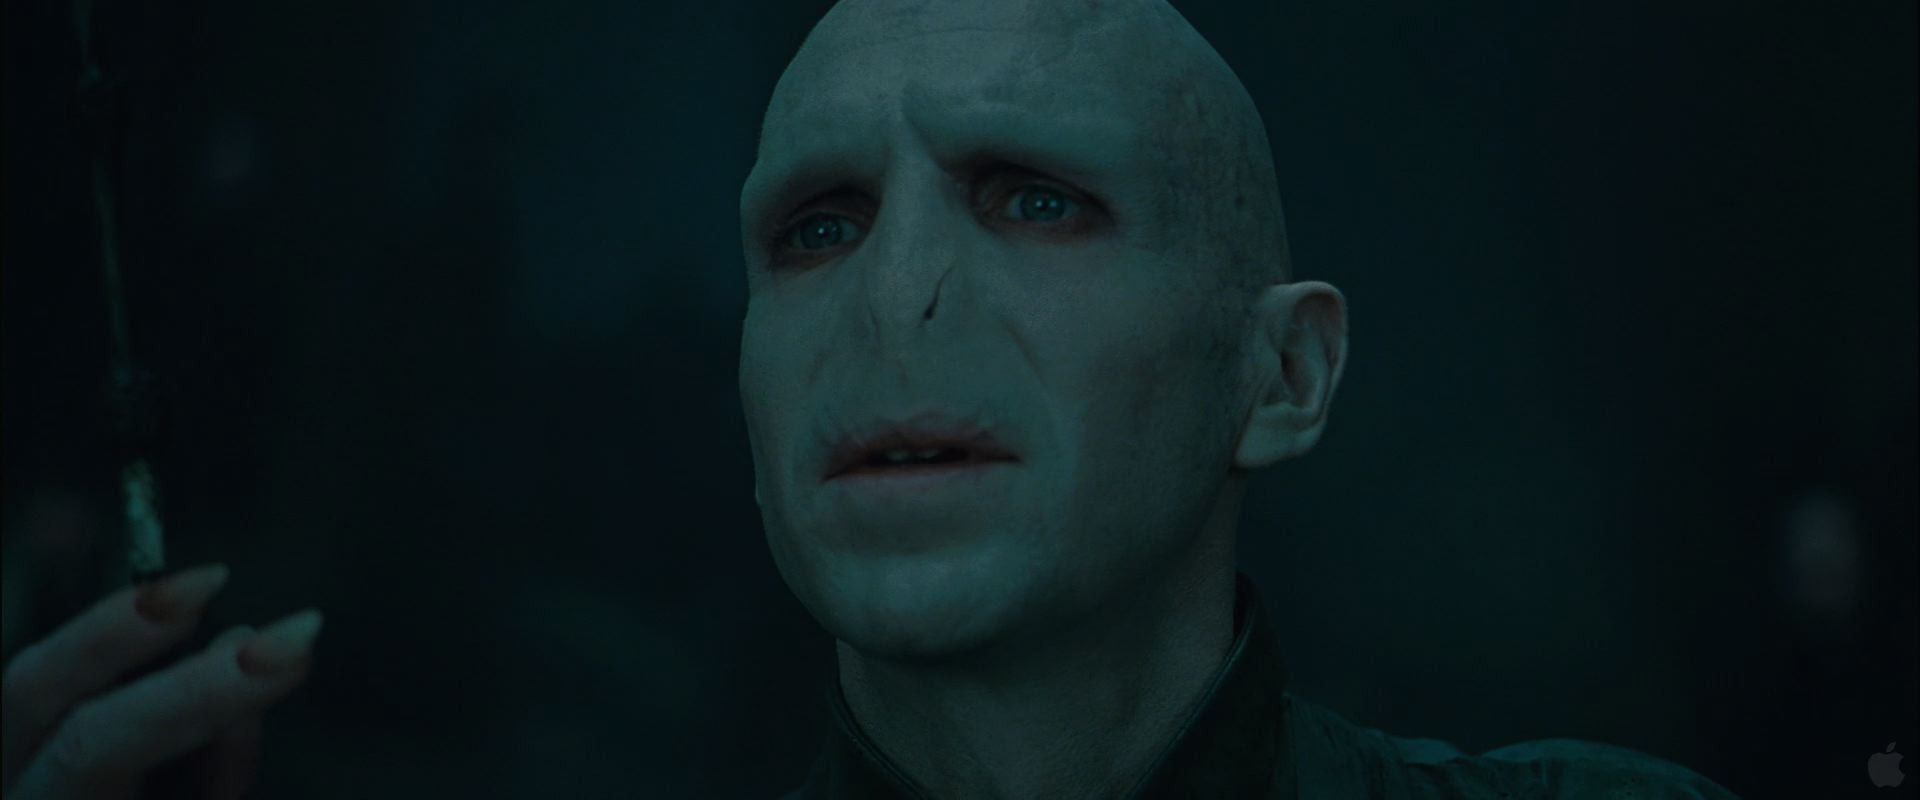 1920x800px lord voldemort wallpaper - wallpapersafari